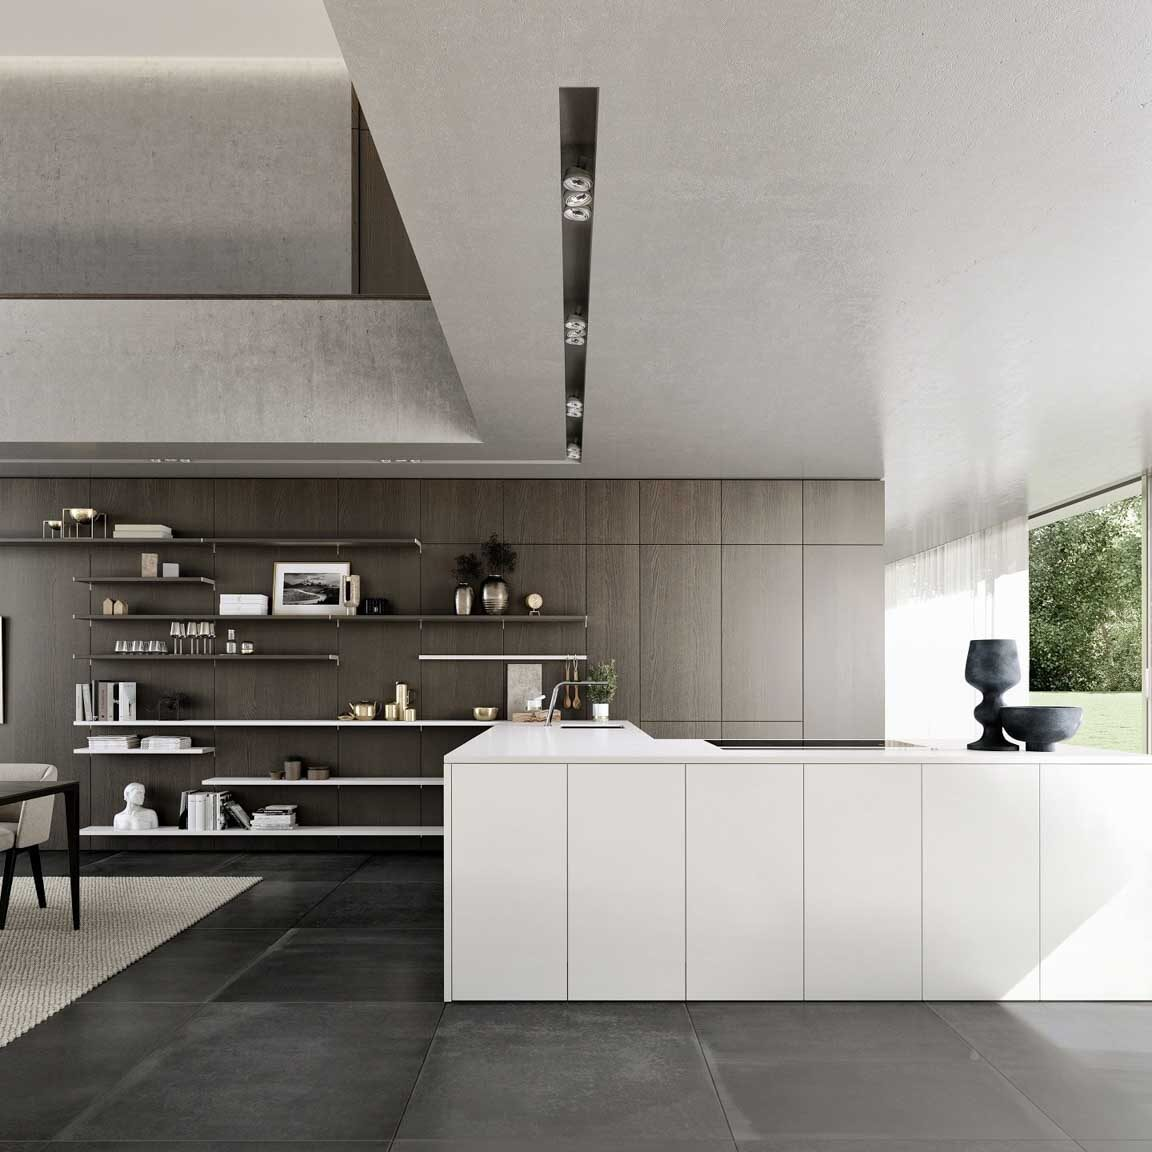 Finest Kitchens And Finishing Materials In Lebanon Mawad